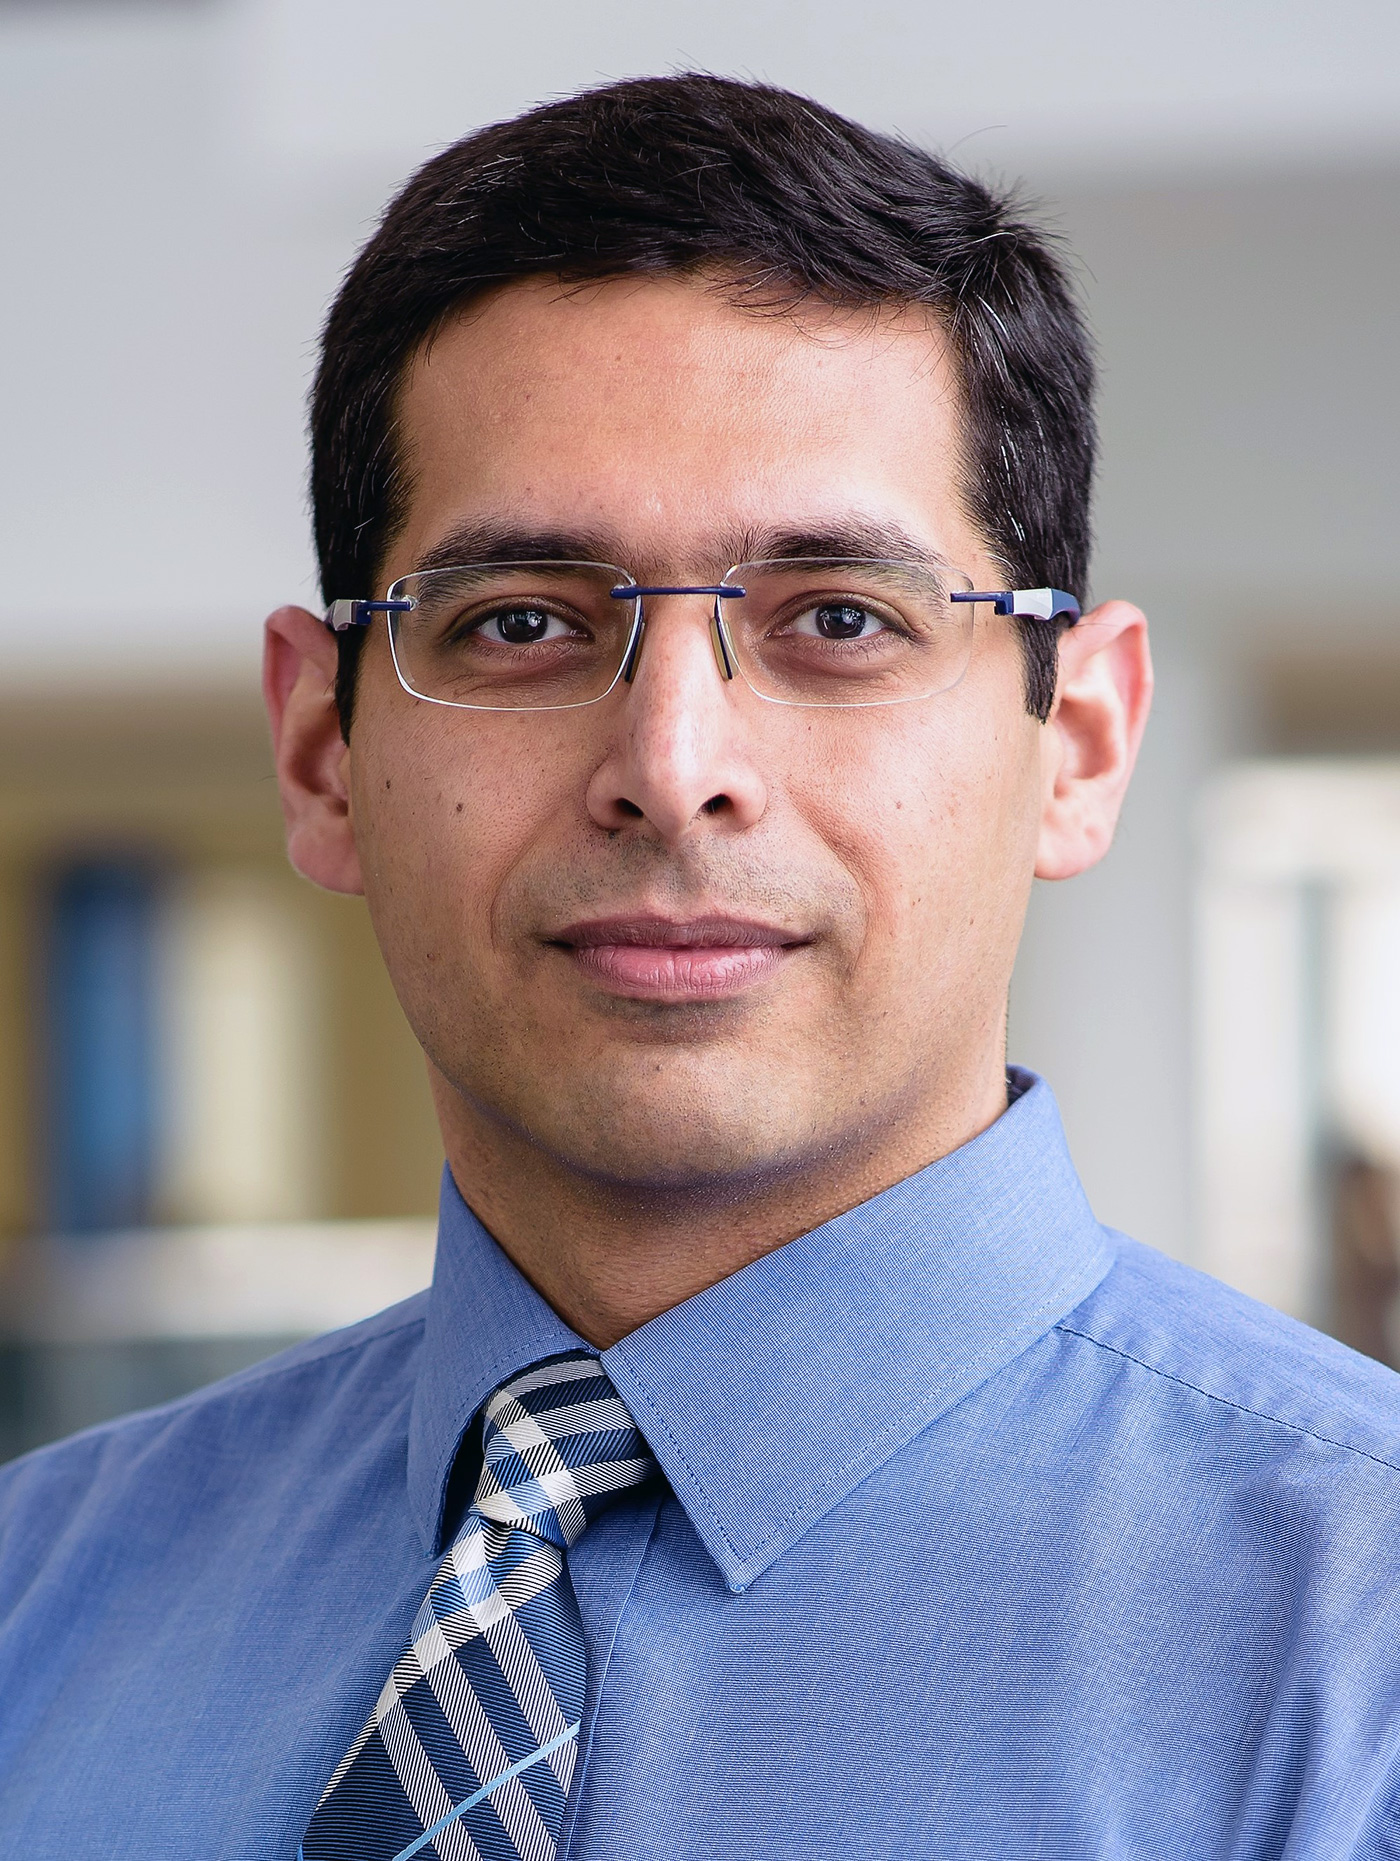 IMAGE OF Kshitij Jerath. Kshitij is an Assistant Professor in the Mechanical Engineering Dept. at UMass Lowell.